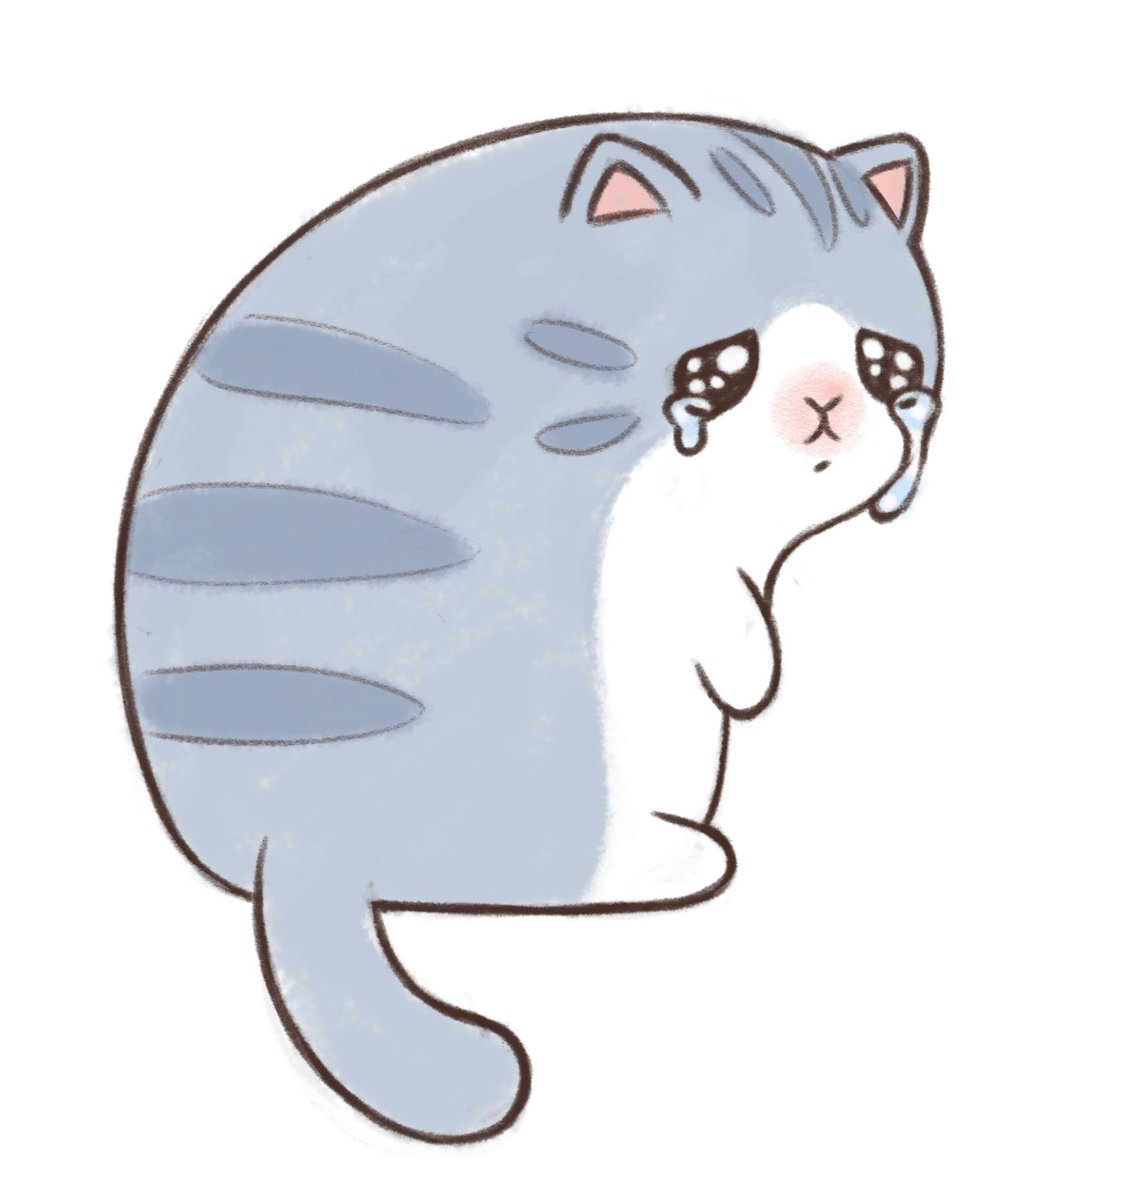 I drew a fan art of my fav sad kitty by @maobaby https://t.co/0mzFMFWPgA